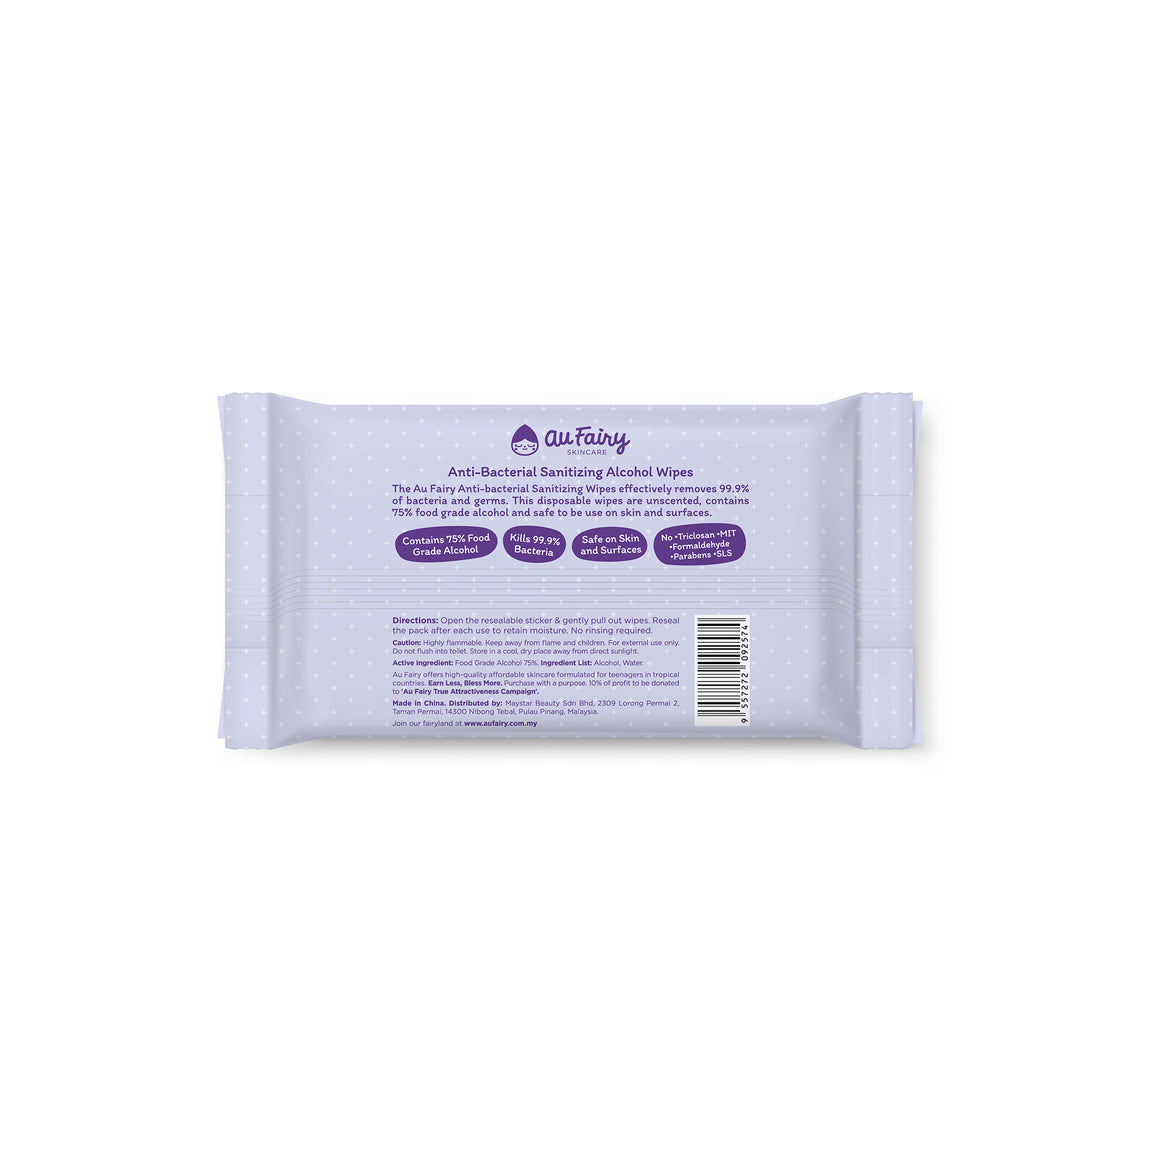 Au Fairy Anti-bacterial Sanitizing Alcohol Wipes - 10s